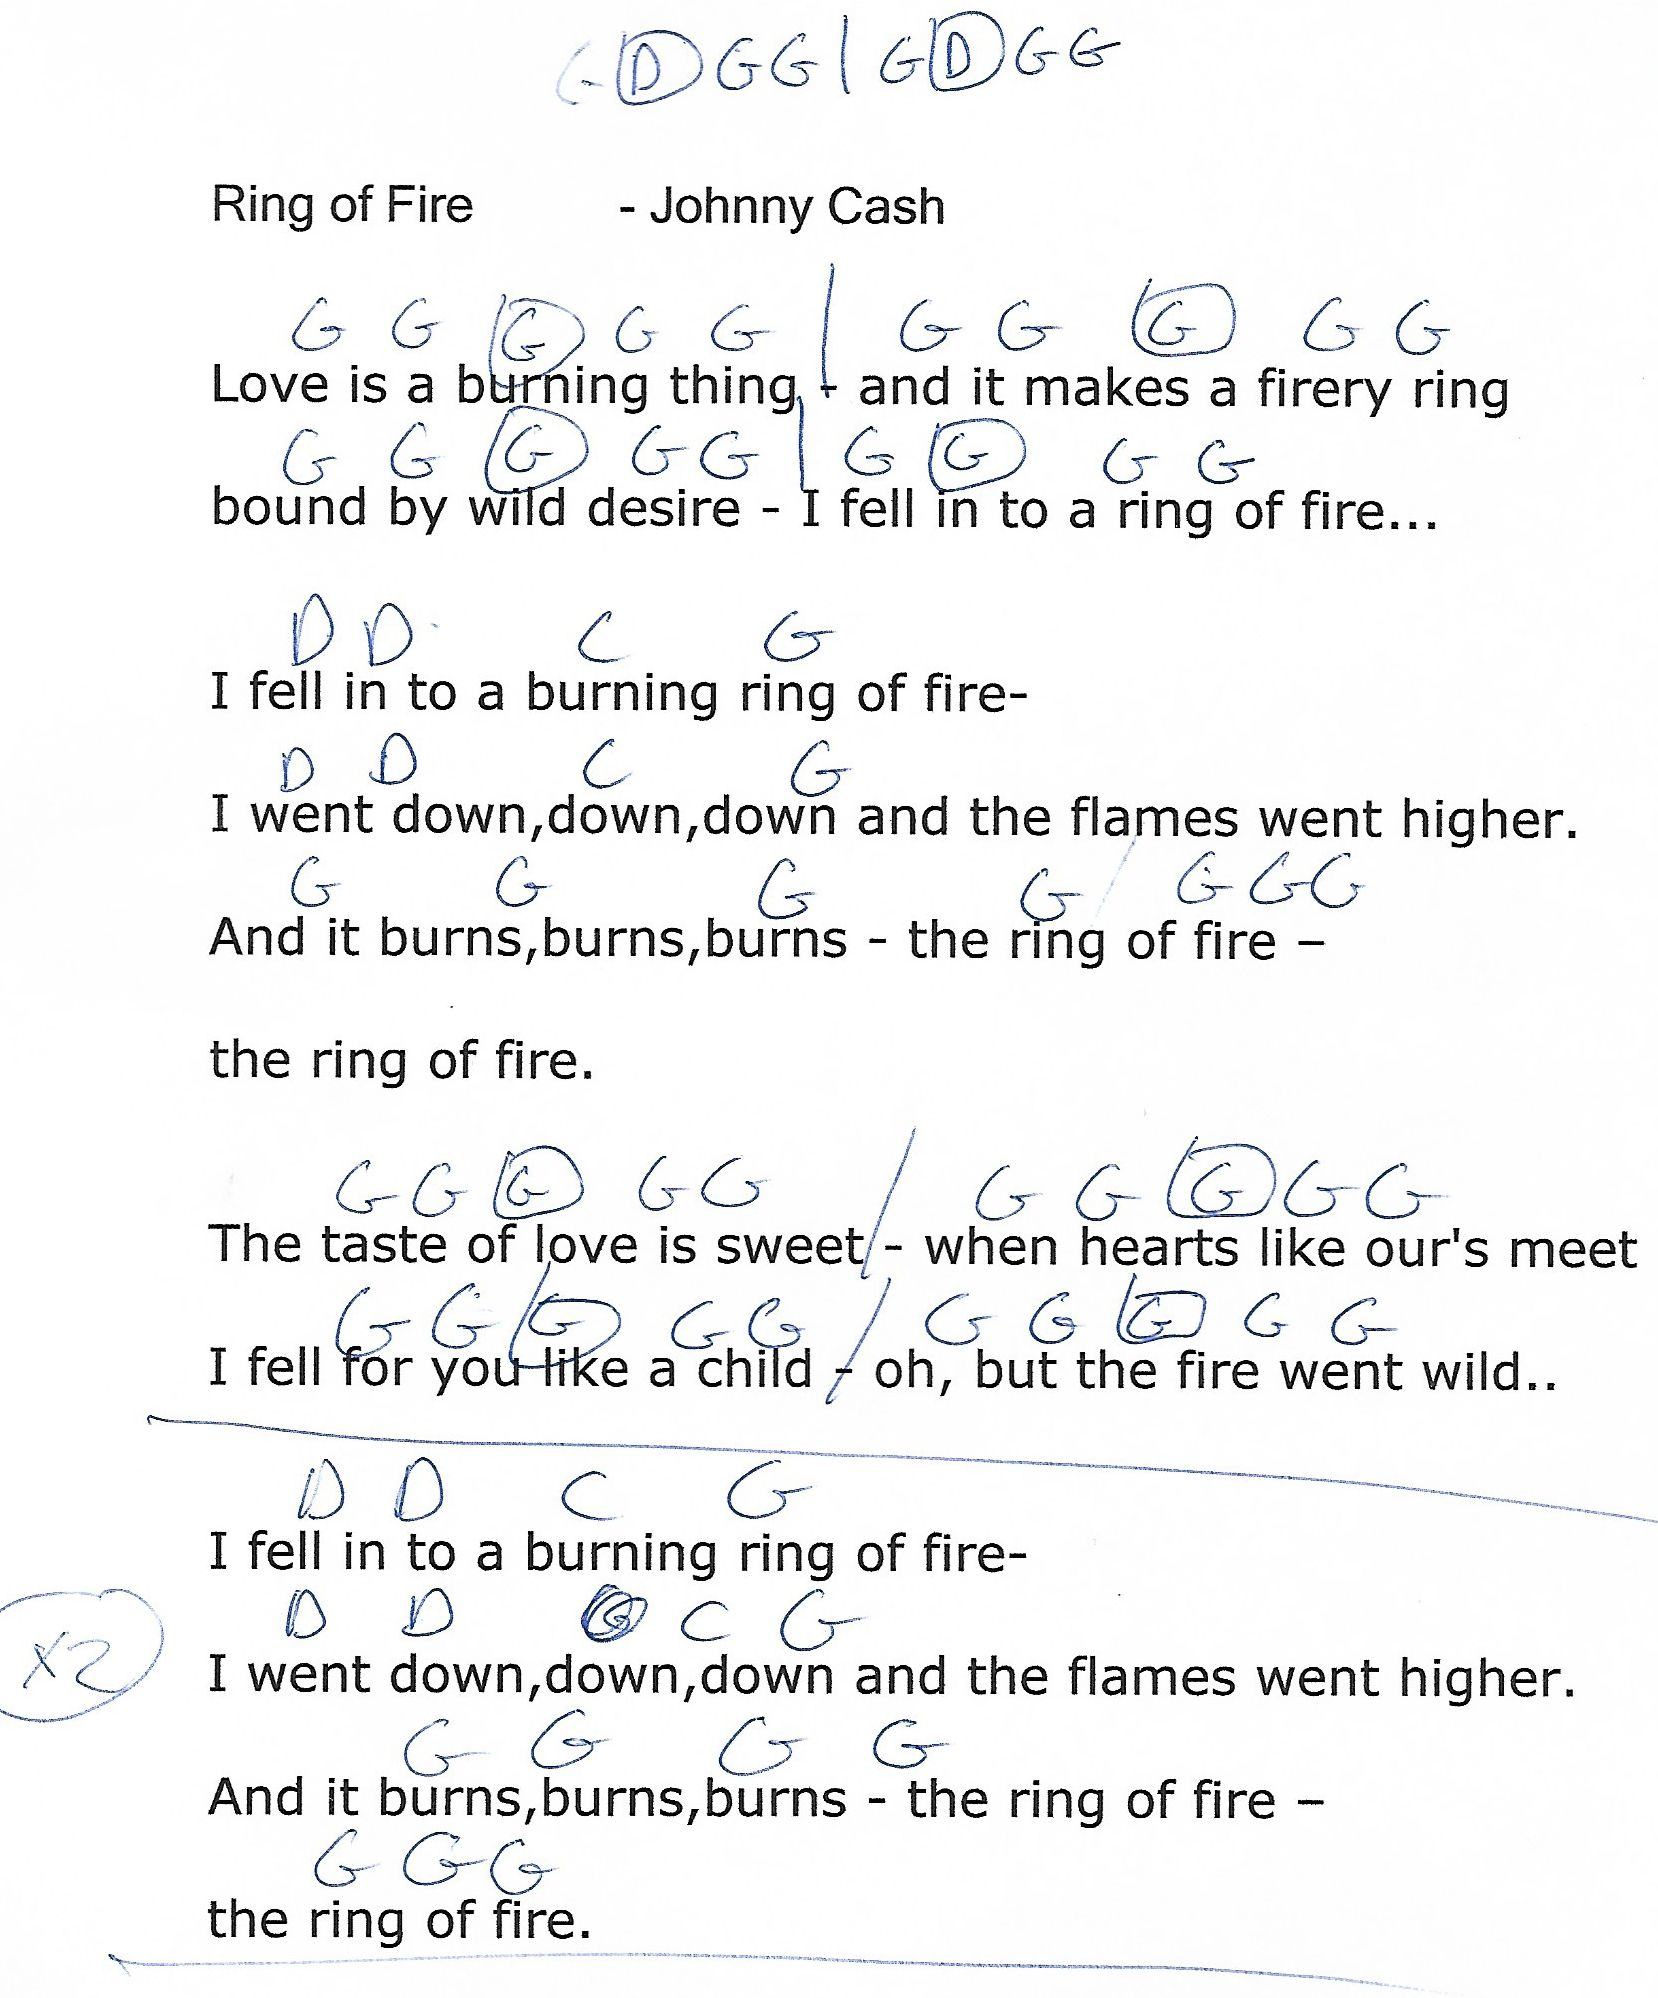 ring of fire johnny cash easy guitar chord chart with lyrics. Black Bedroom Furniture Sets. Home Design Ideas